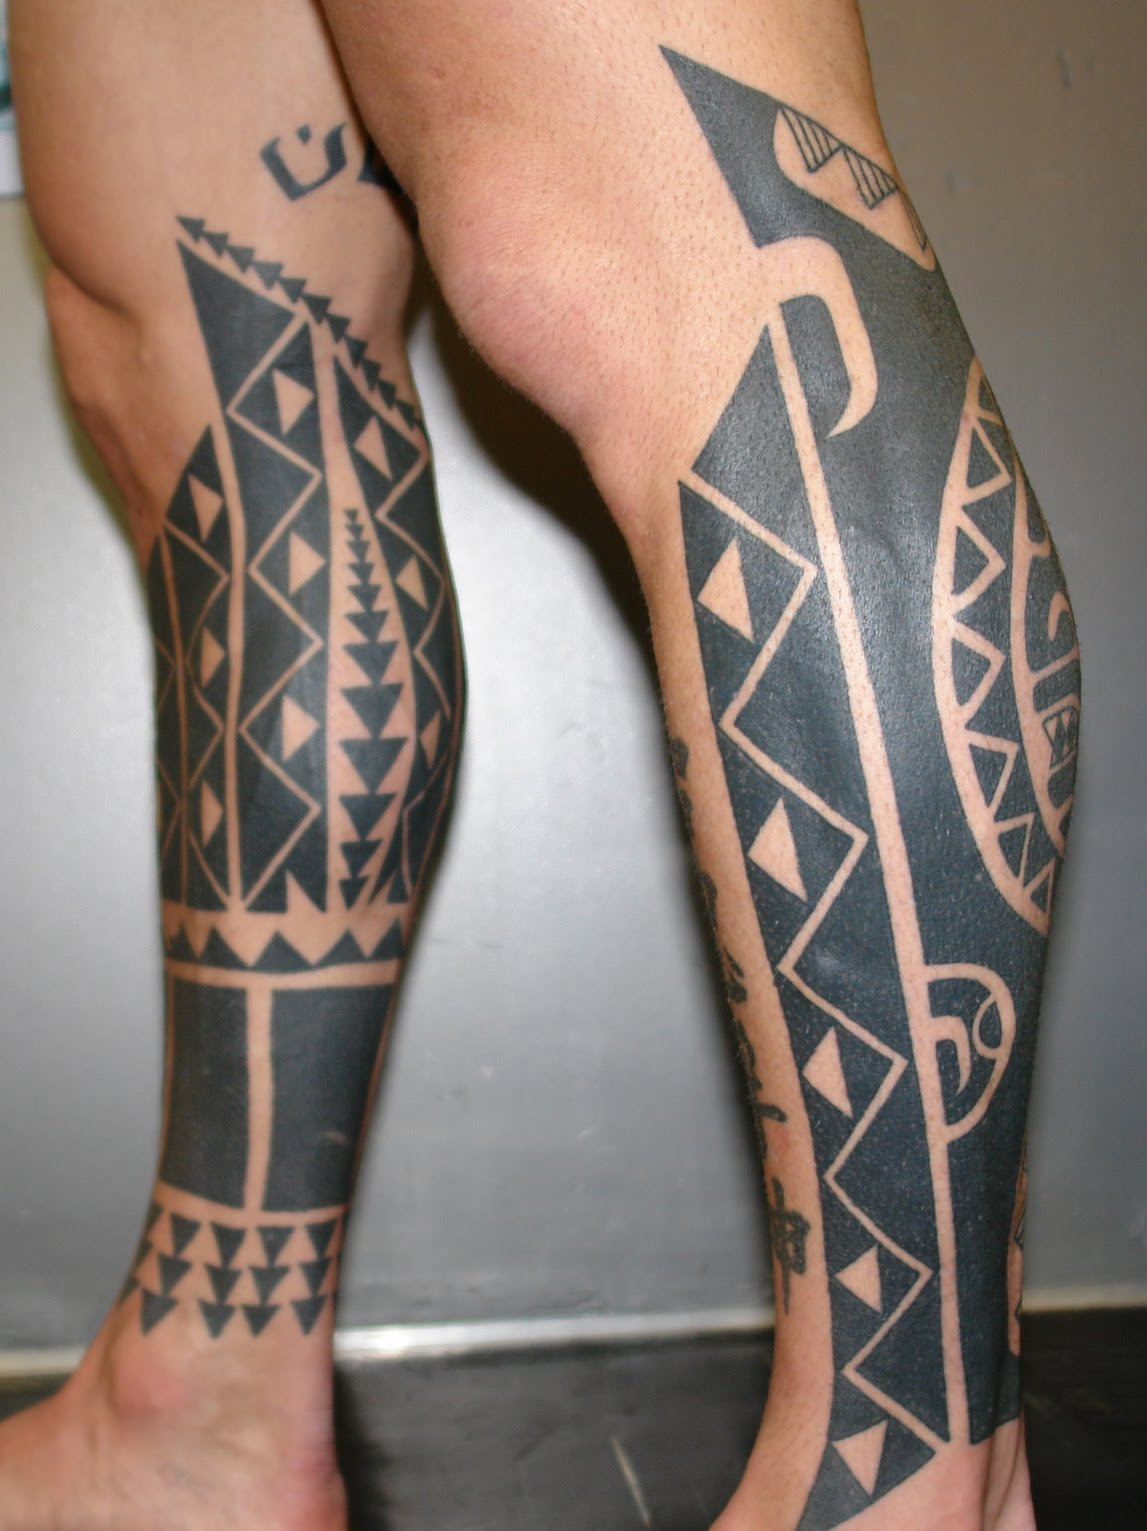 tattooz designs tribal leg tattoos designs tribal leg tattoos idea. Black Bedroom Furniture Sets. Home Design Ideas